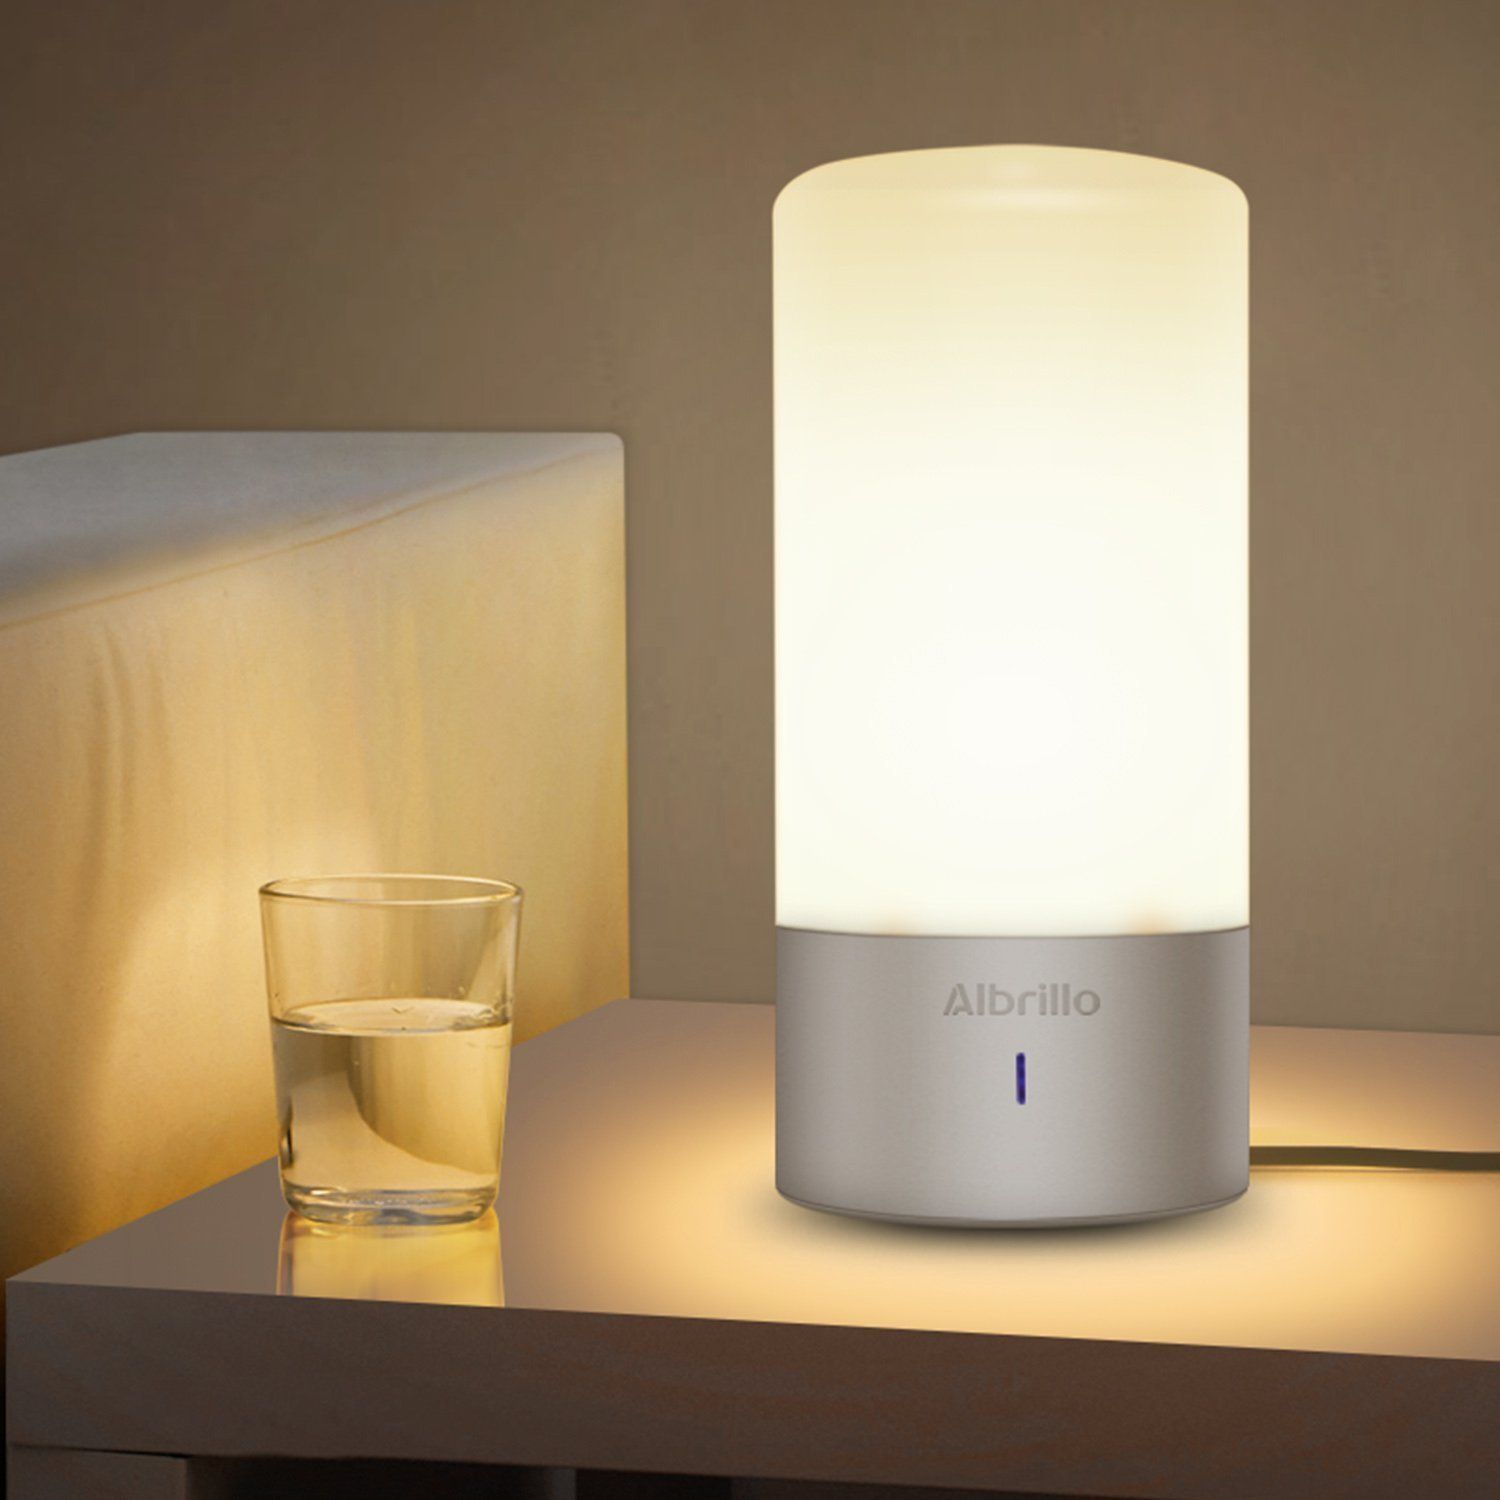 Amazon White Bedroom Lamps Amazon White Bedroom Lamps Click Link To See More Reference In 2020 Bedroom Lamps Nightstand Touch Lamp Bedroom Night Stands